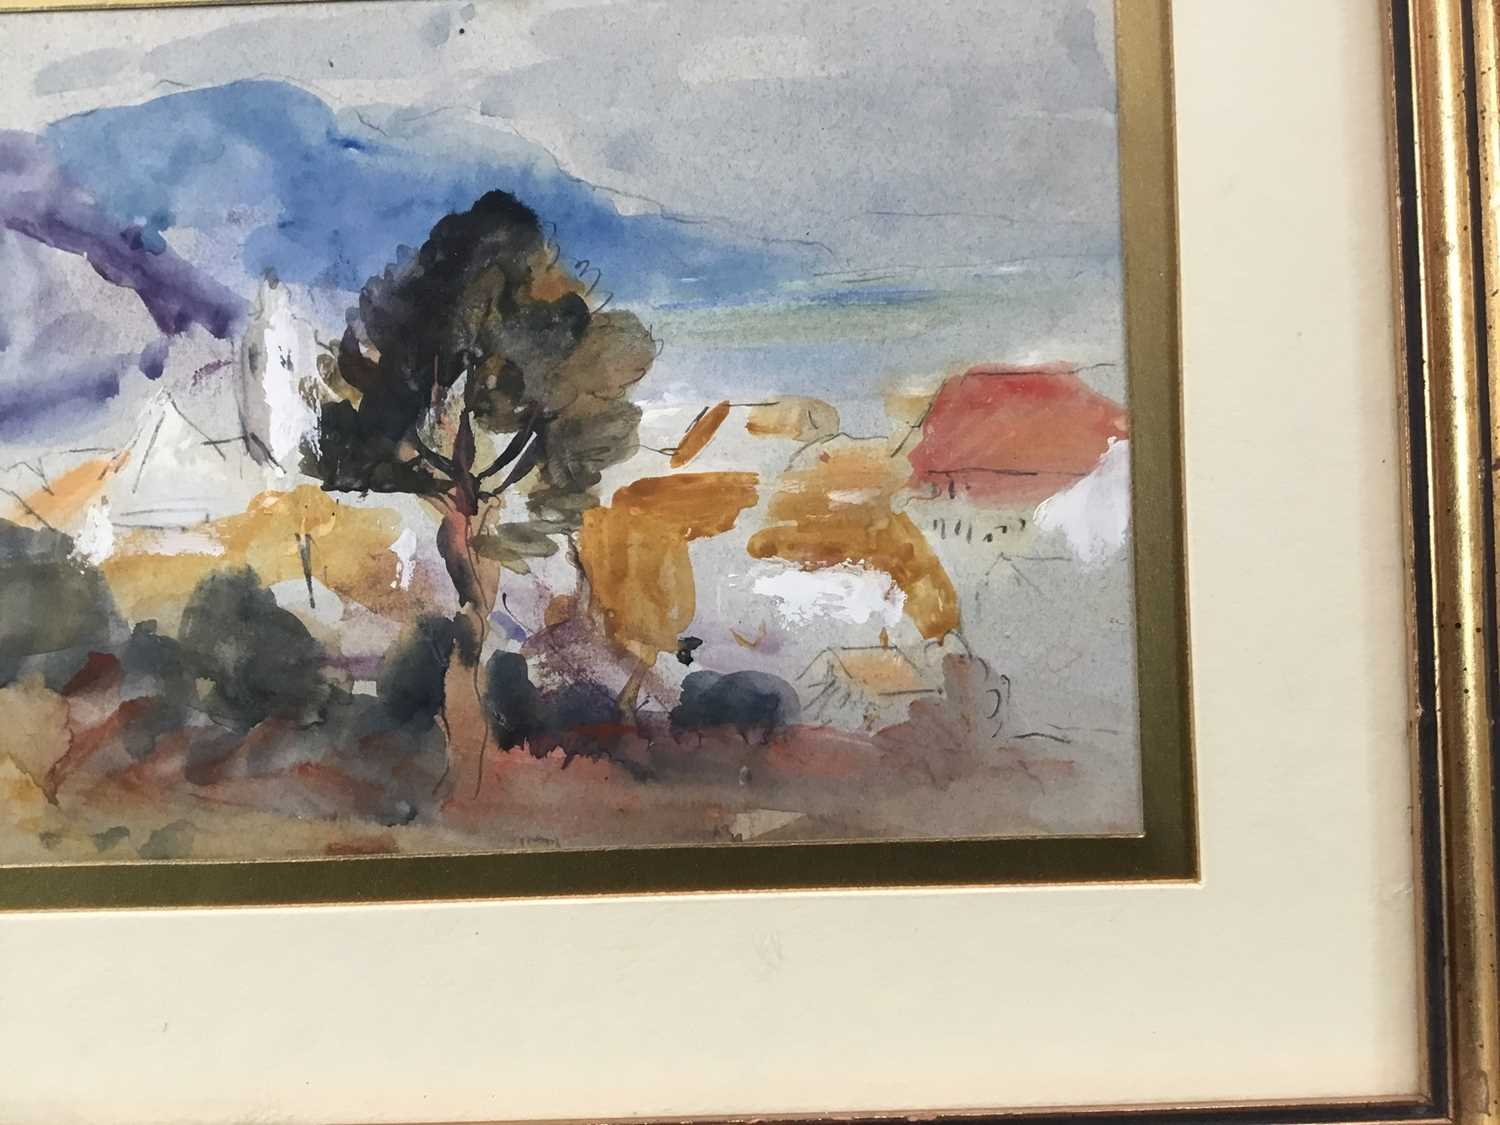 Robert G. D. Alexander (1875-1945) pencil and watercolour - view of Laigueglia, 14cm x 18.5cm, in gl - Image 4 of 8